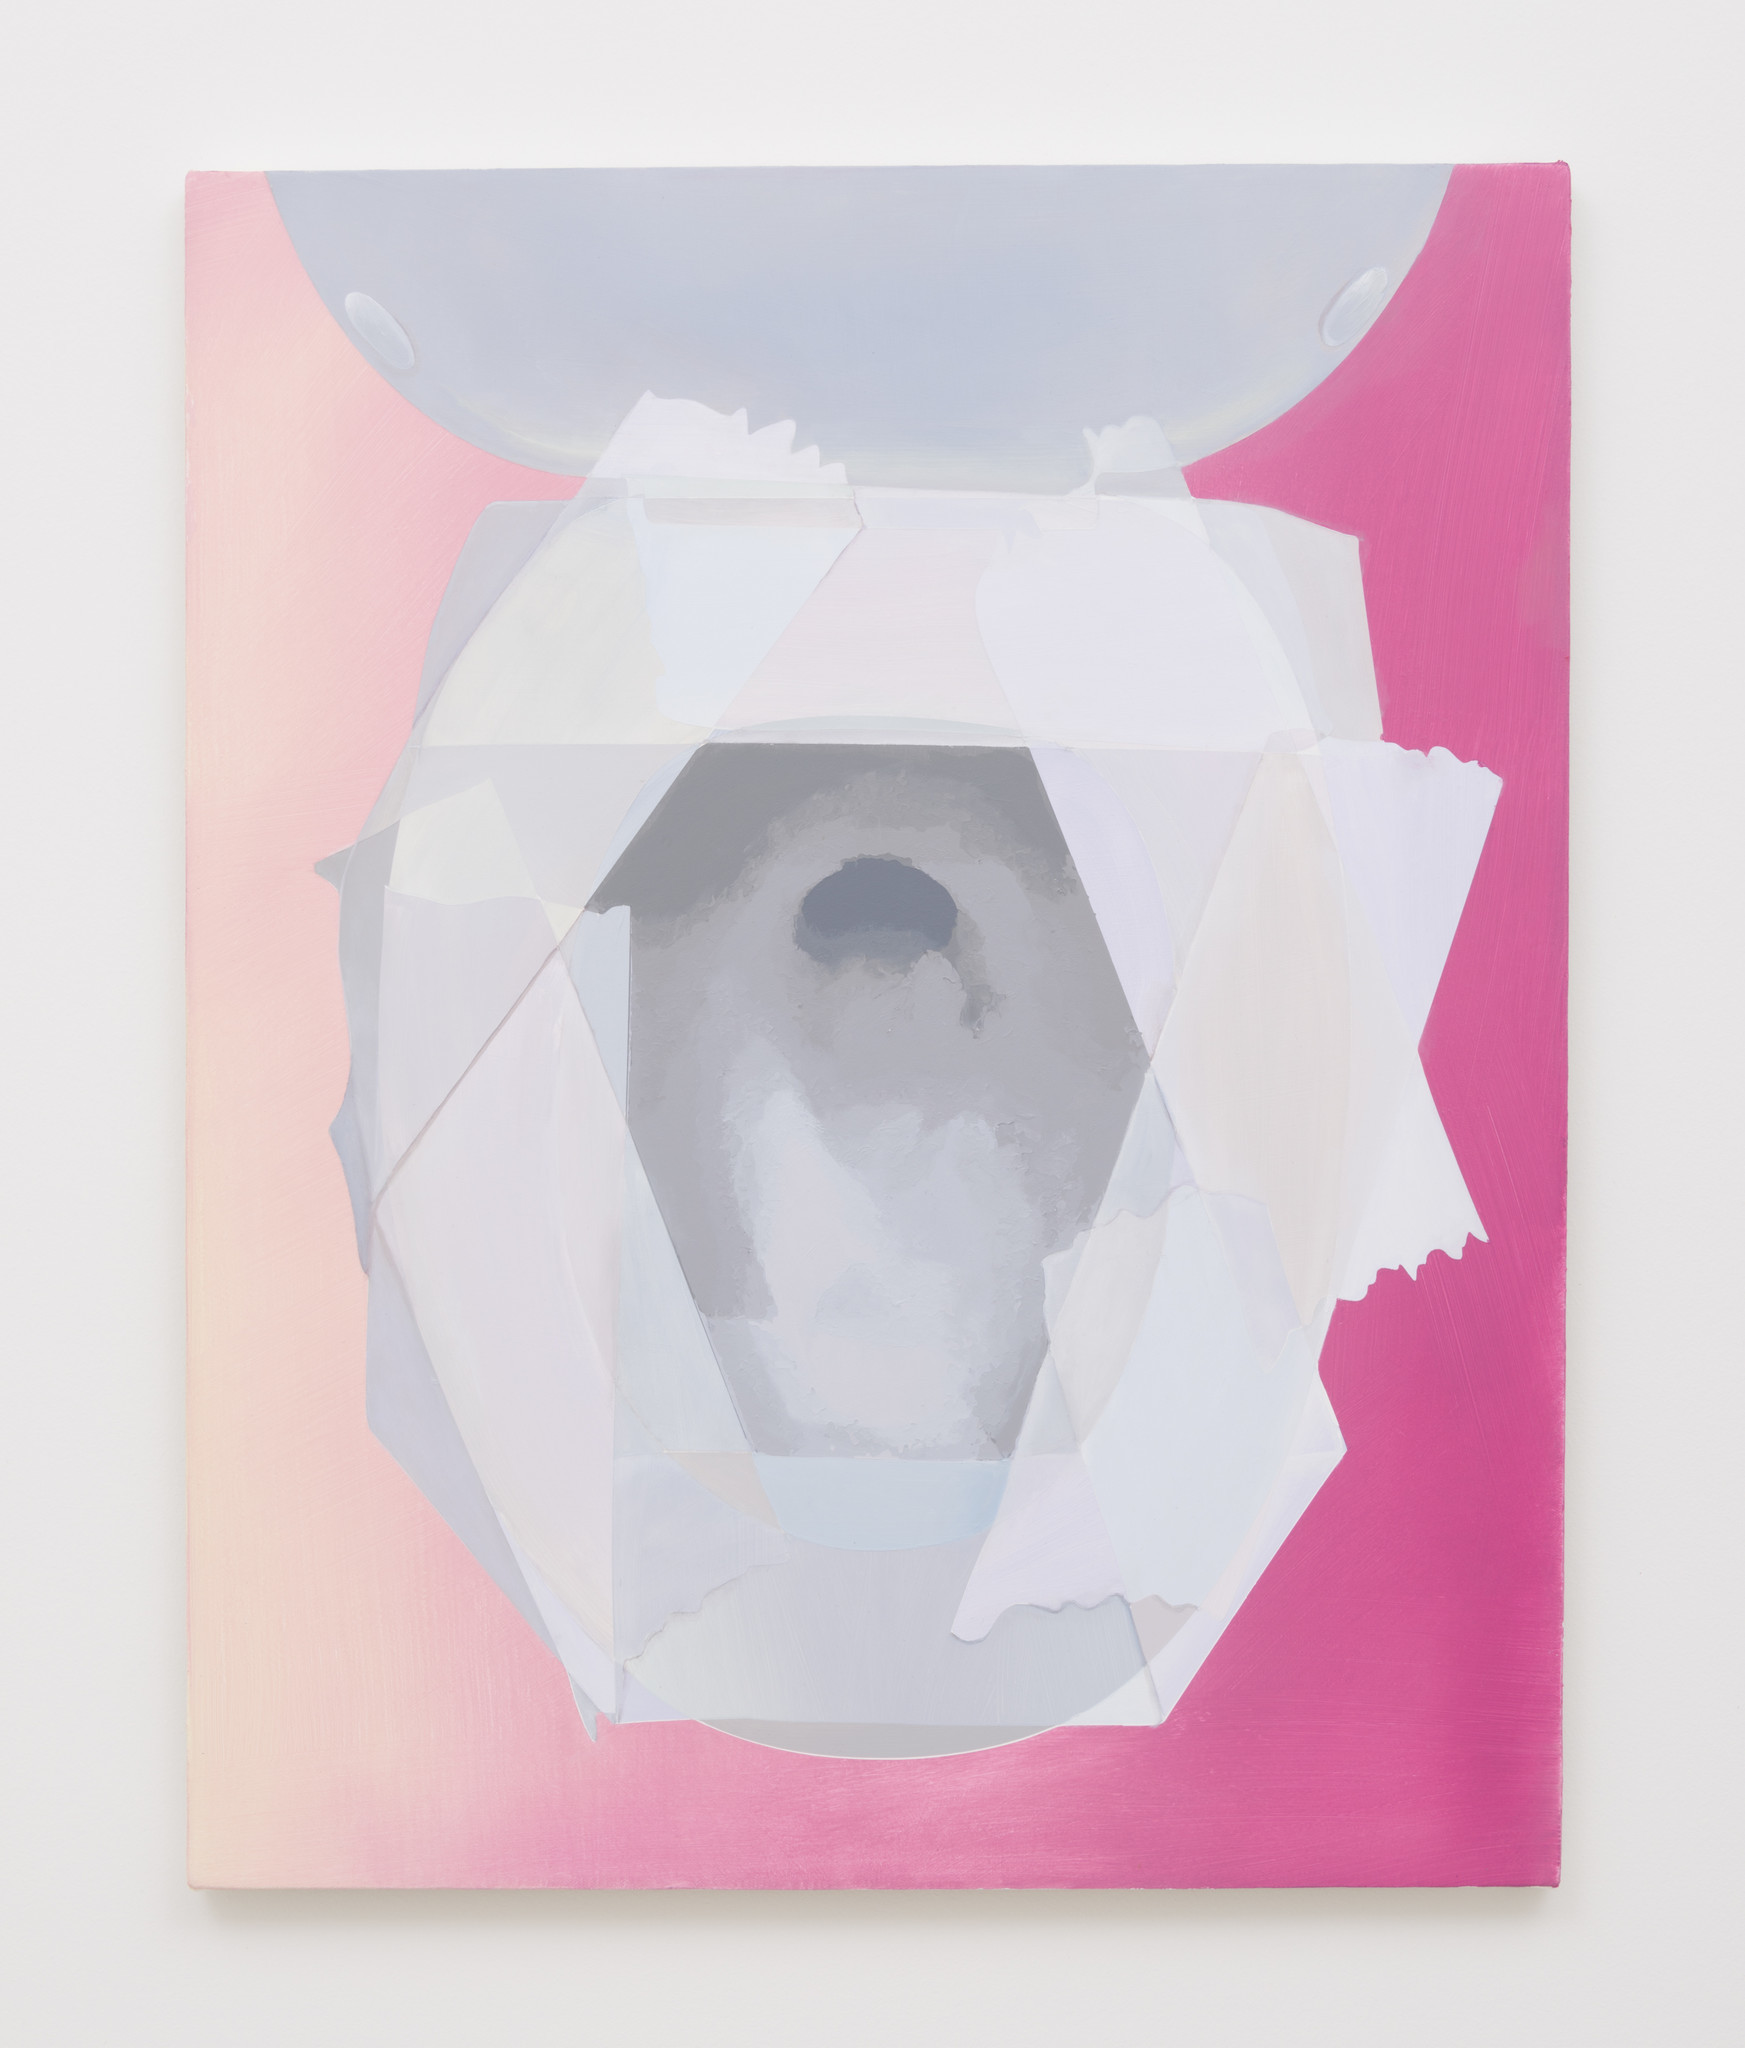 """Joel Holmberg, """"Toilet With Toilet Paper Barrier, No. 11,"""" 2017, acrylic on canvas"""